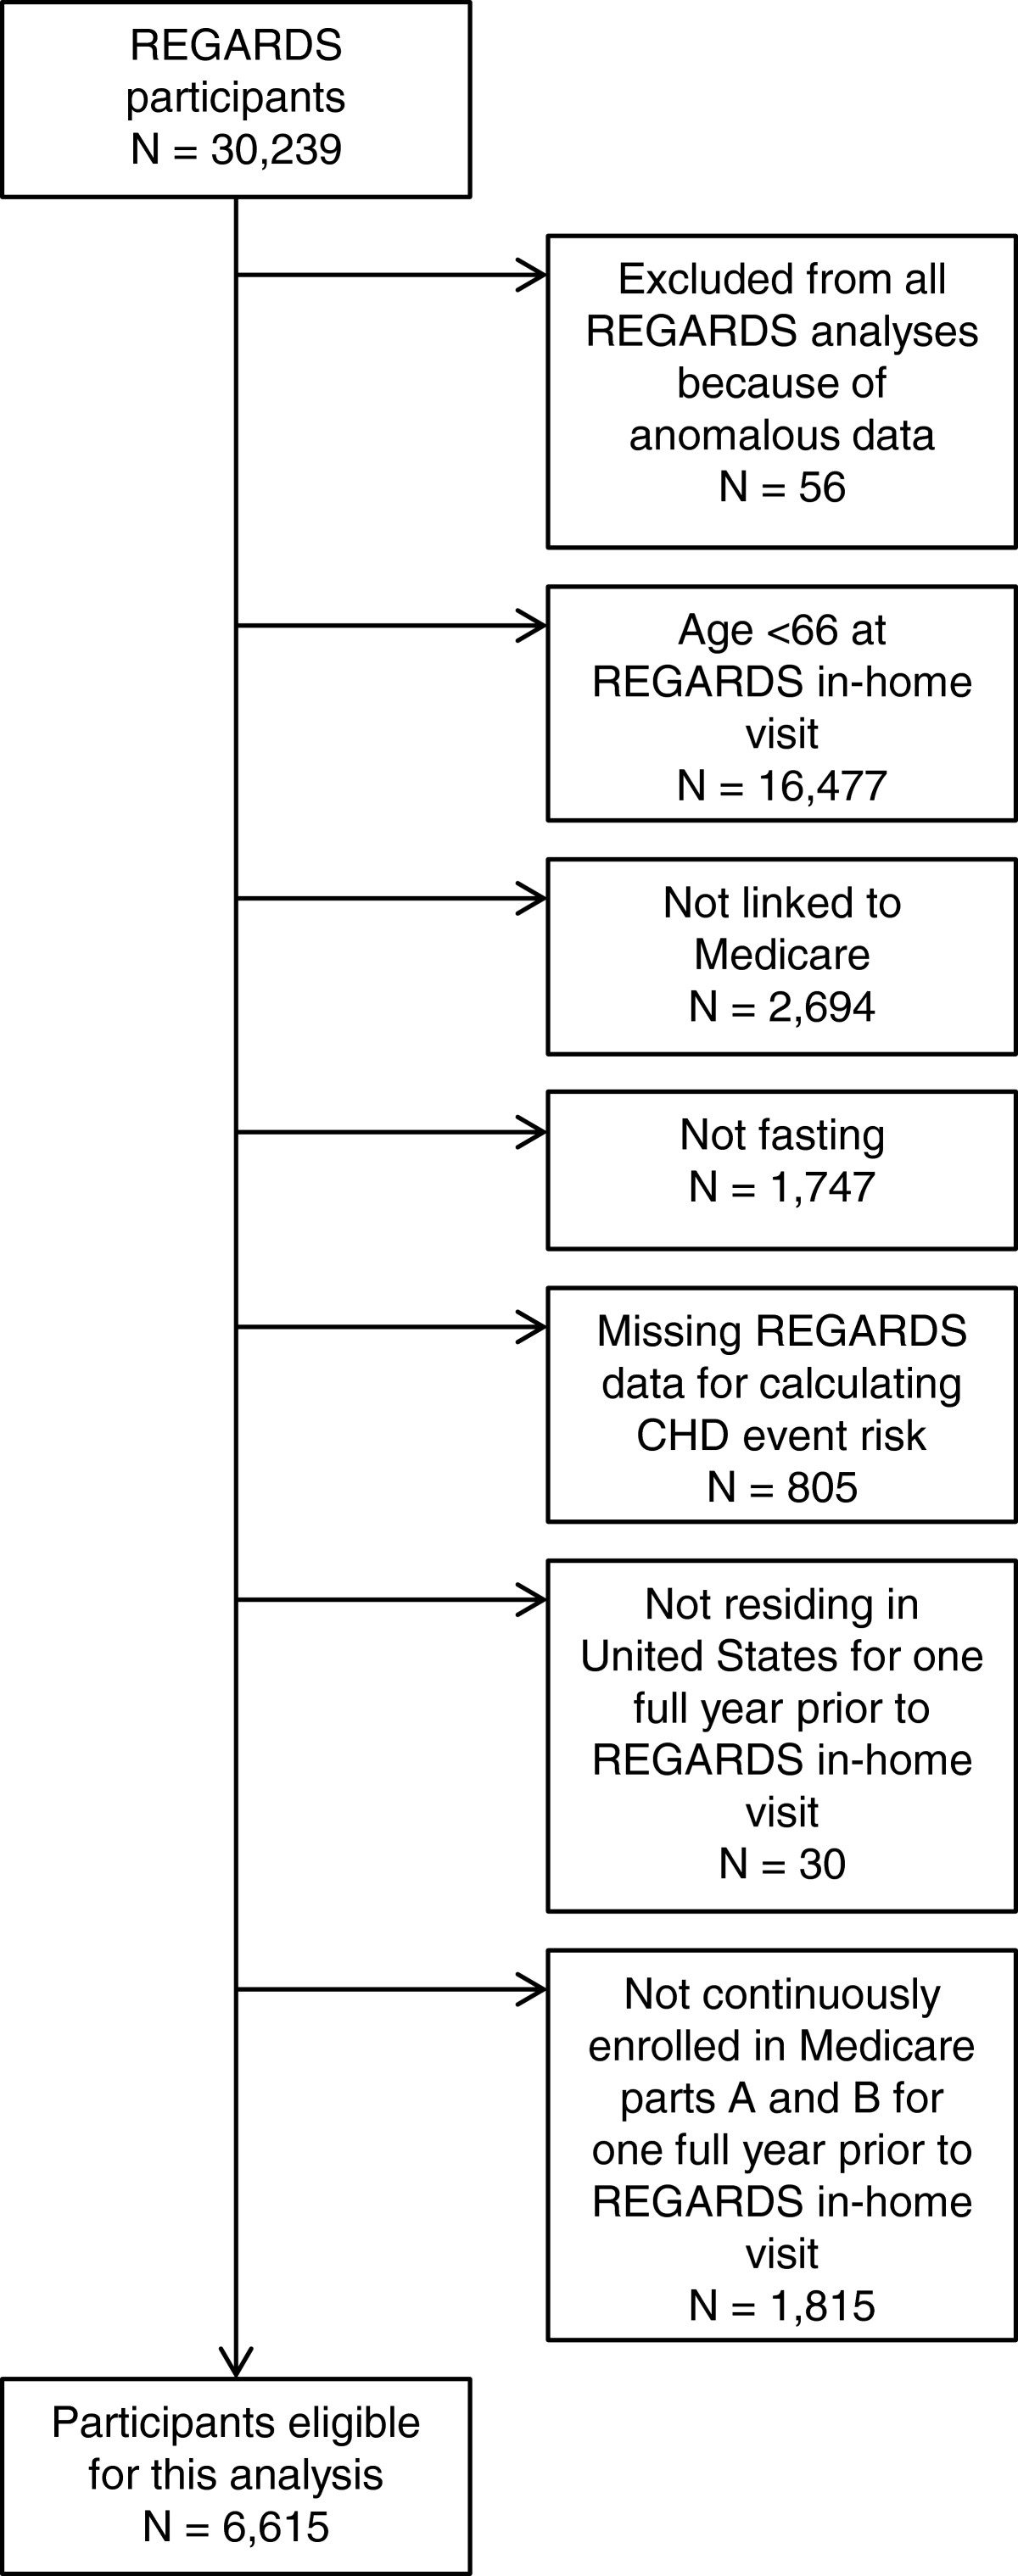 https://static-content.springer.com/image/art%3A10.1186%2F1472-6963-14-195/MediaObjects/12913_2013_Article_3118_Fig1_HTML.jpg